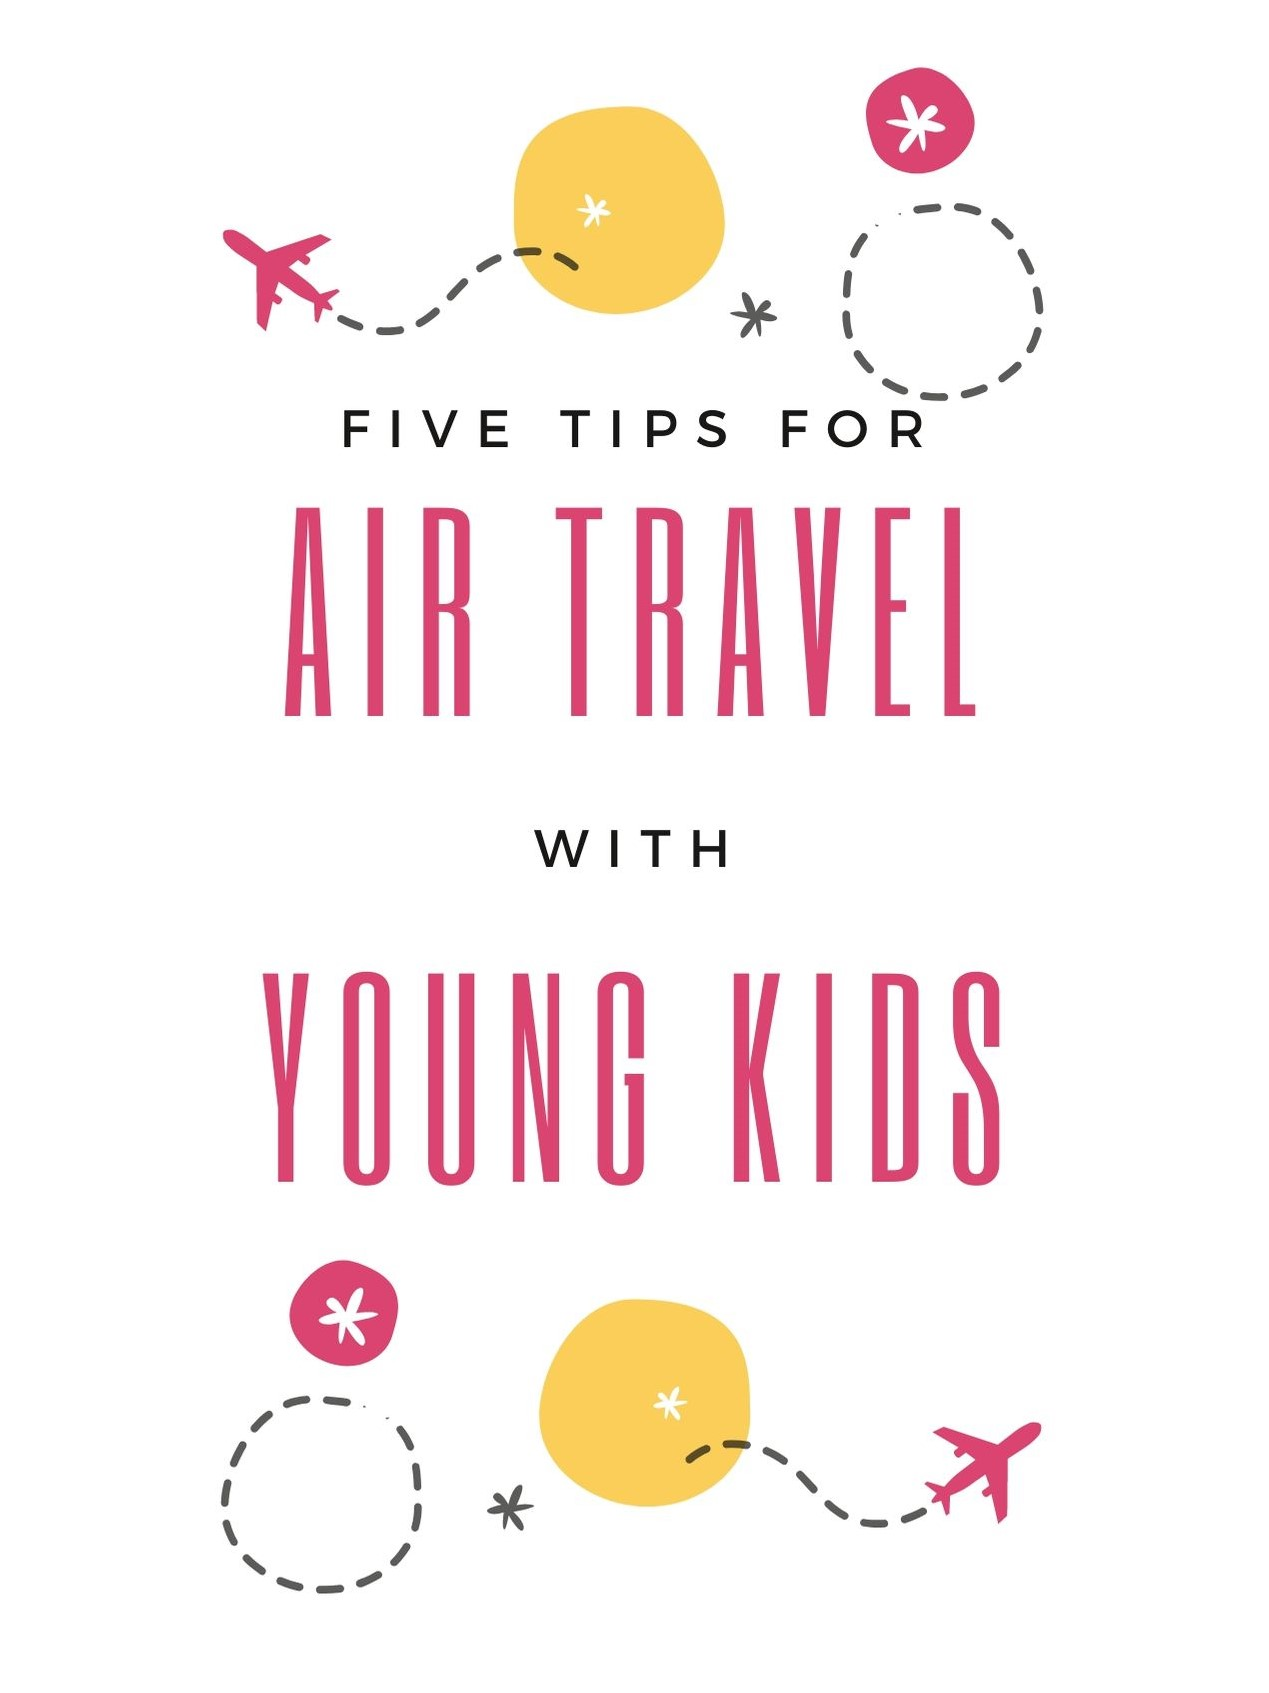 Get our top tips for flying with kids and travel like a pro. Everyone really can stay calm and happy when flying! We've got the secret to show you how! #airtravelwithkids #airtravelwithtoddler #airtravelwithtoddlertips #airtravelwithkidspackinglist #roleplayforkids #roleplaysocialskills #roleplayforkidssocialskills #flyingwithkids #flyingwithkidsforthefirsttime #flyingwithkidstips #flyingwithkidshacks #flyingwithkidsactivities  via @karendawkins